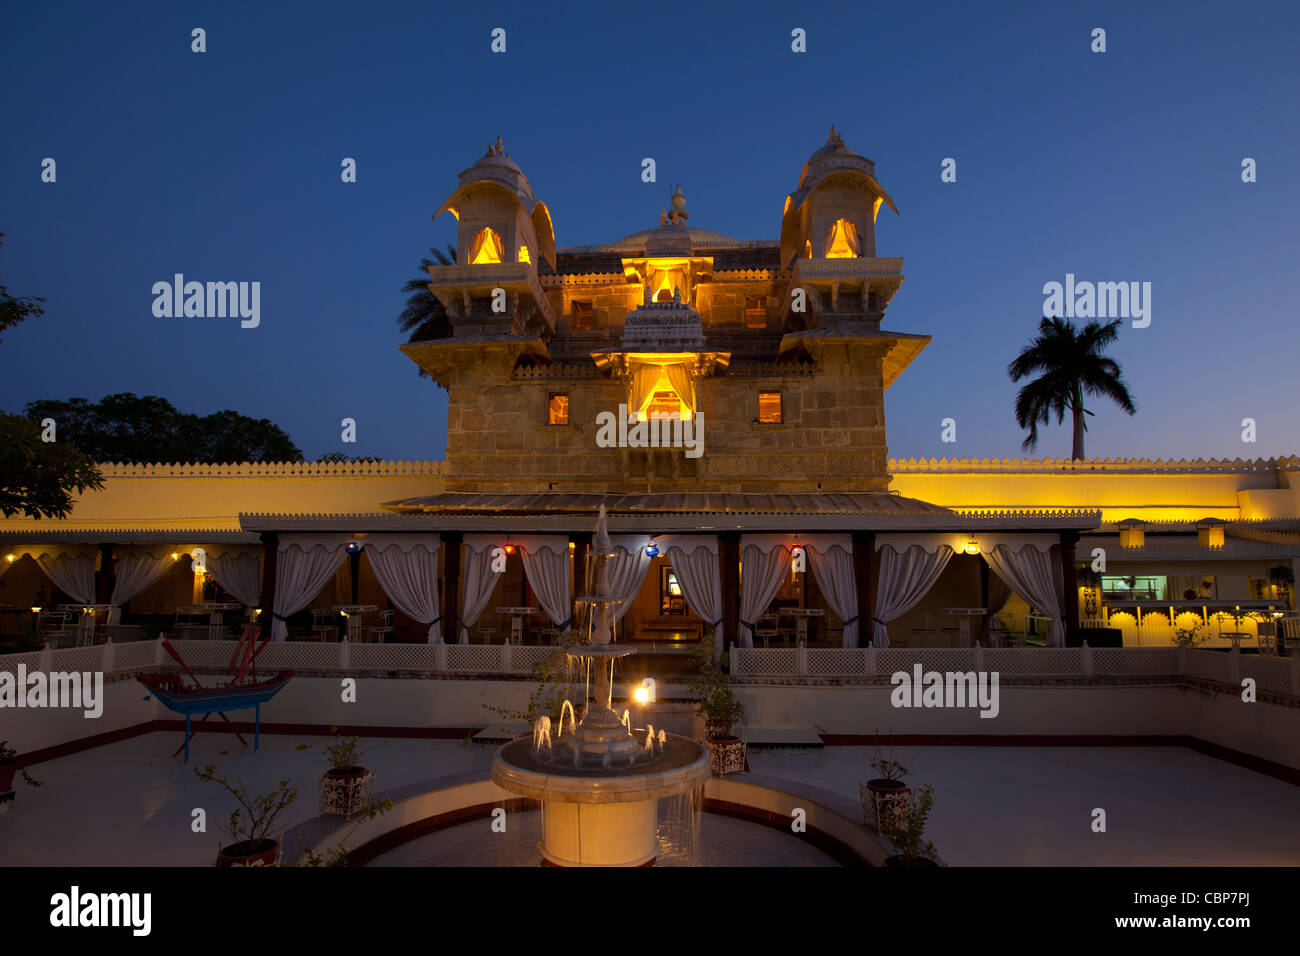 Jagmandir Island Palace of City Palace Complex of 76th Maharana of Mewar, Shreeji Arvind Singh Mewar of Udaipur - Stock Image